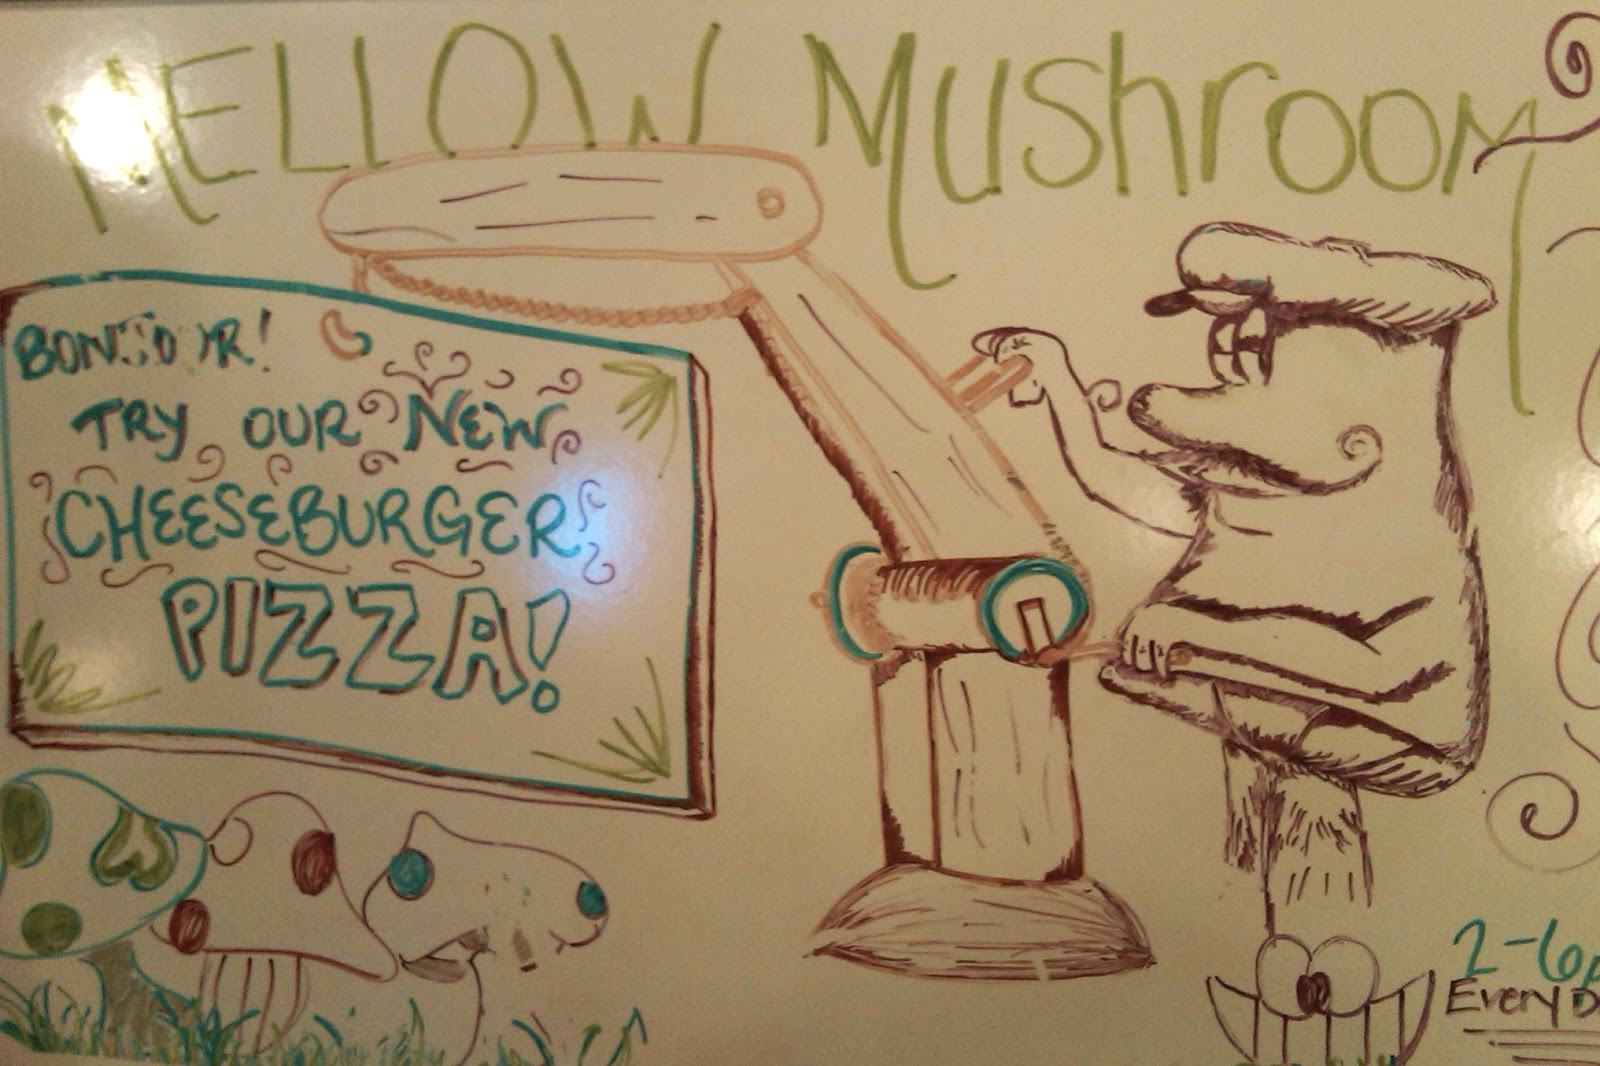 Mellow Mushroom Pizza differentiated itself via flexibility in its business model